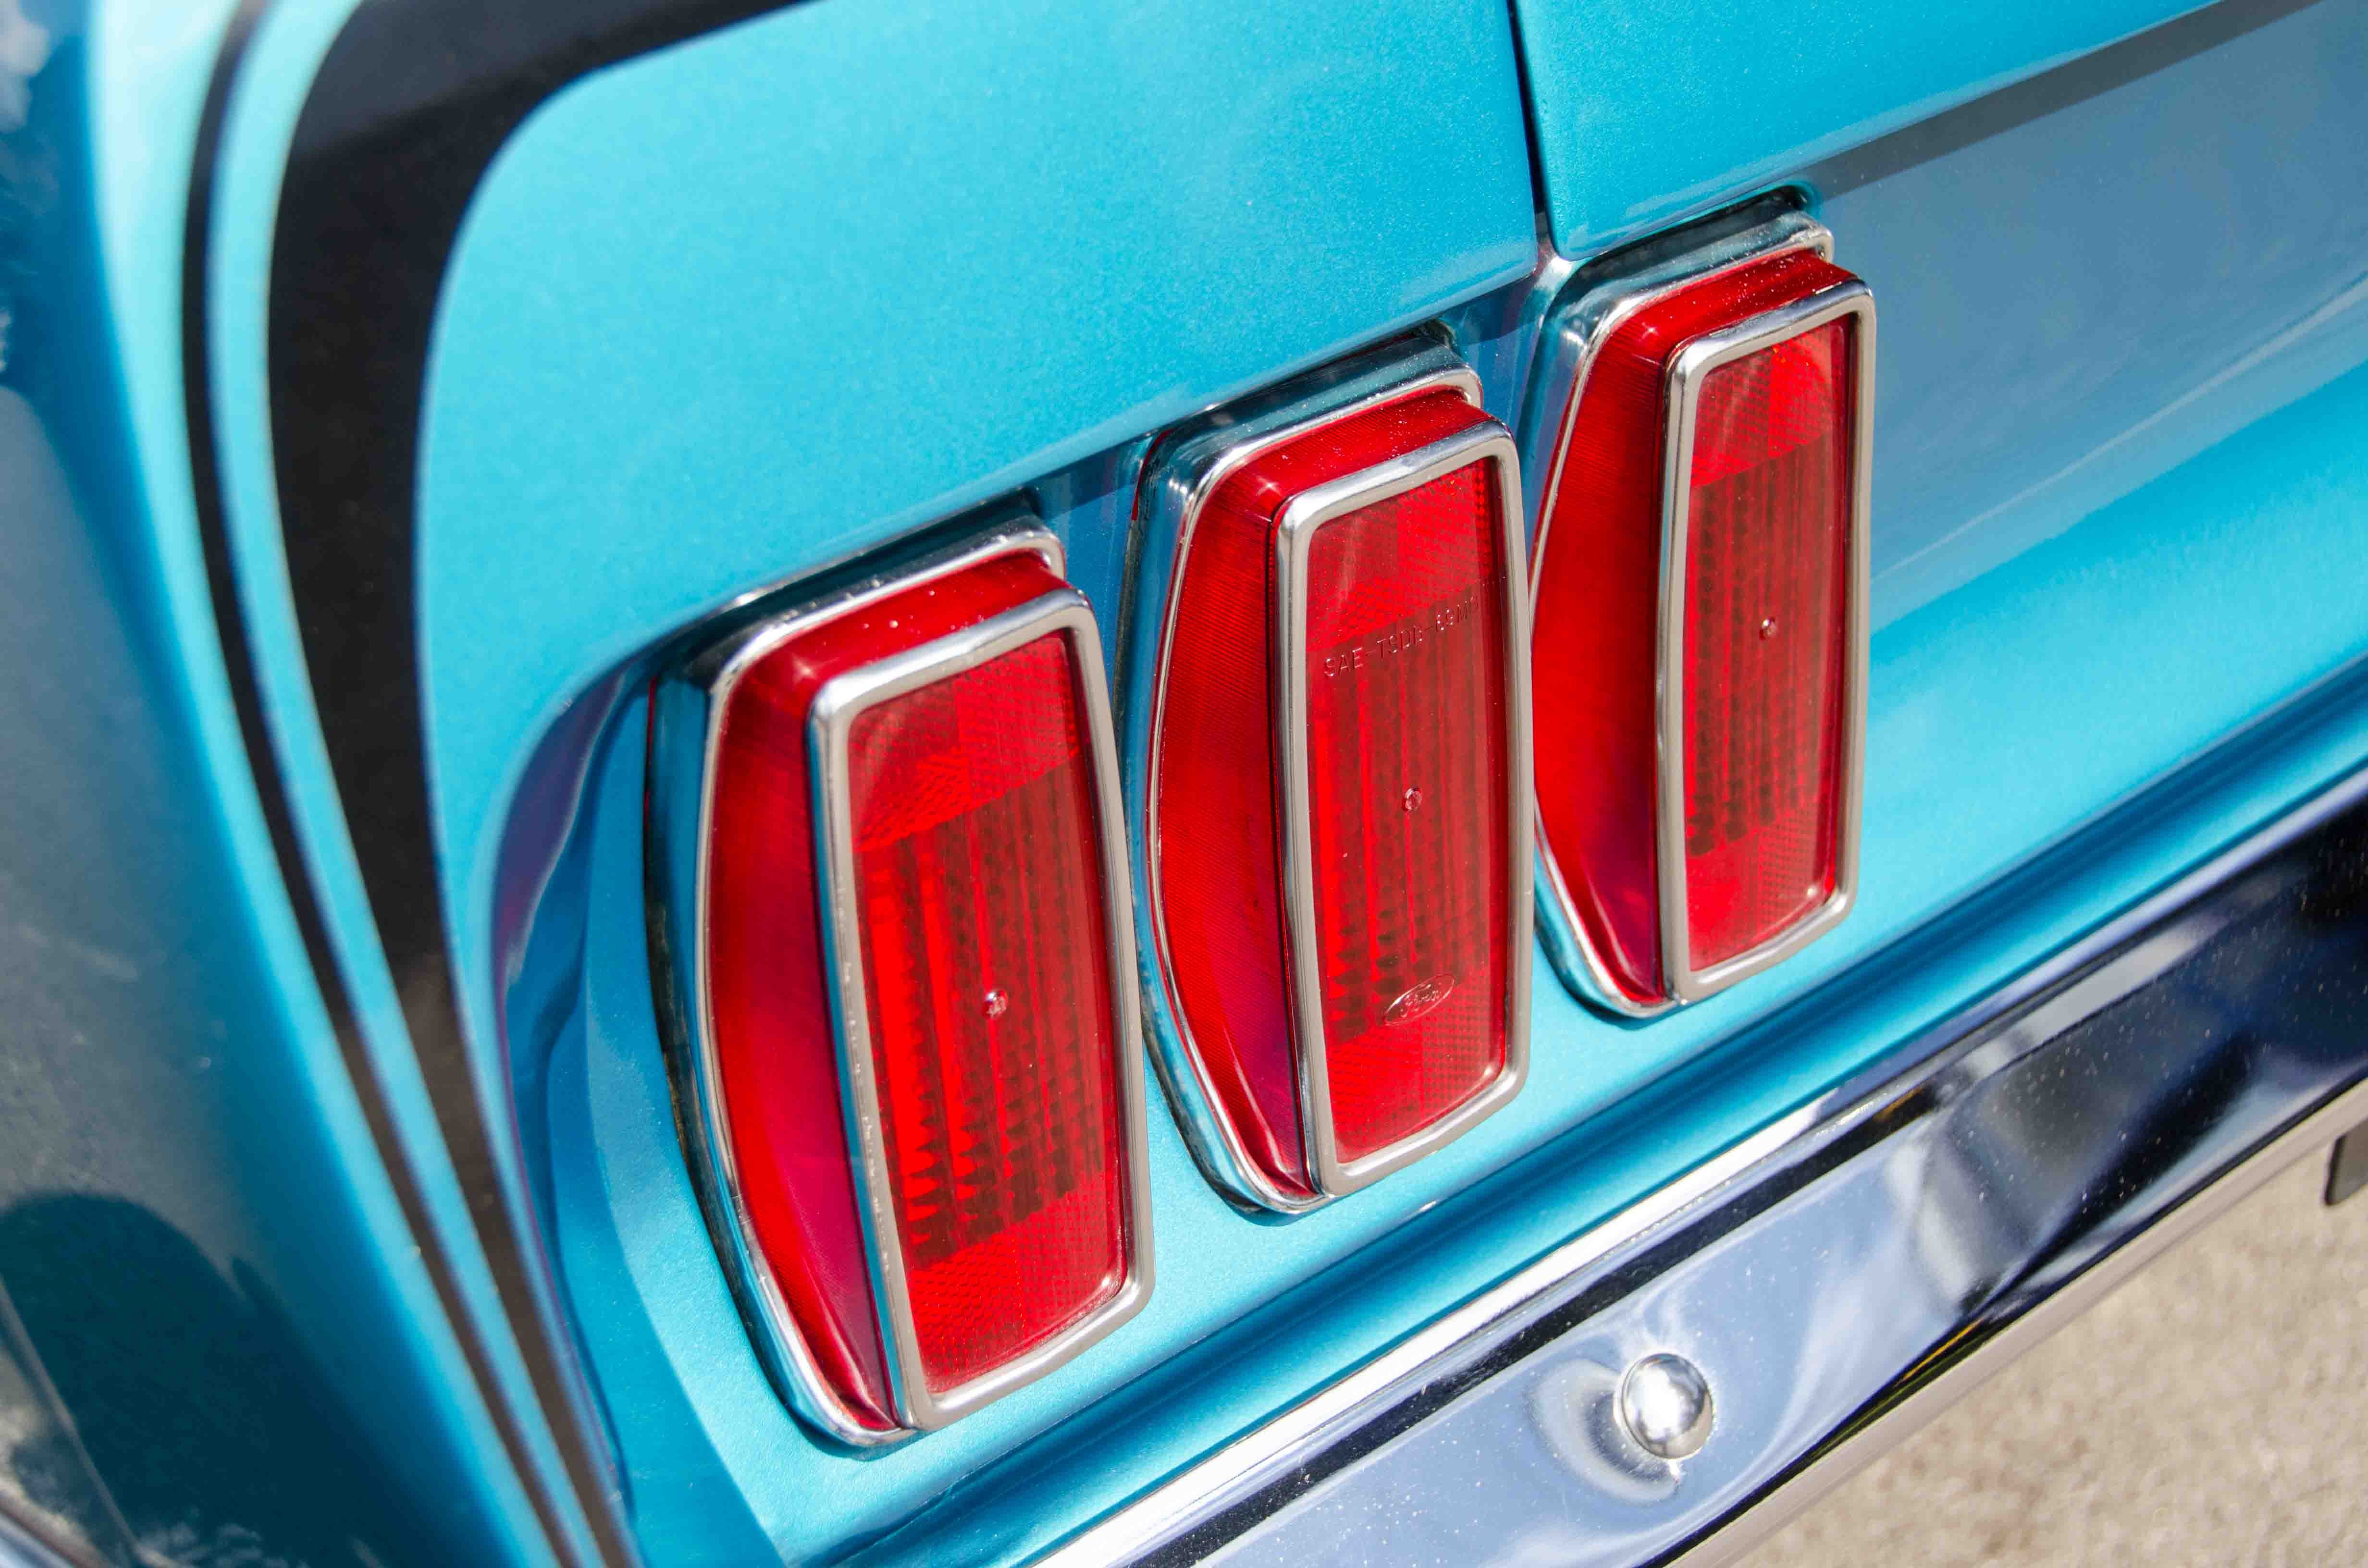 1969 Ford Mustang Voiture De Collection Vendre Mach 1 Gulfstream Aqua